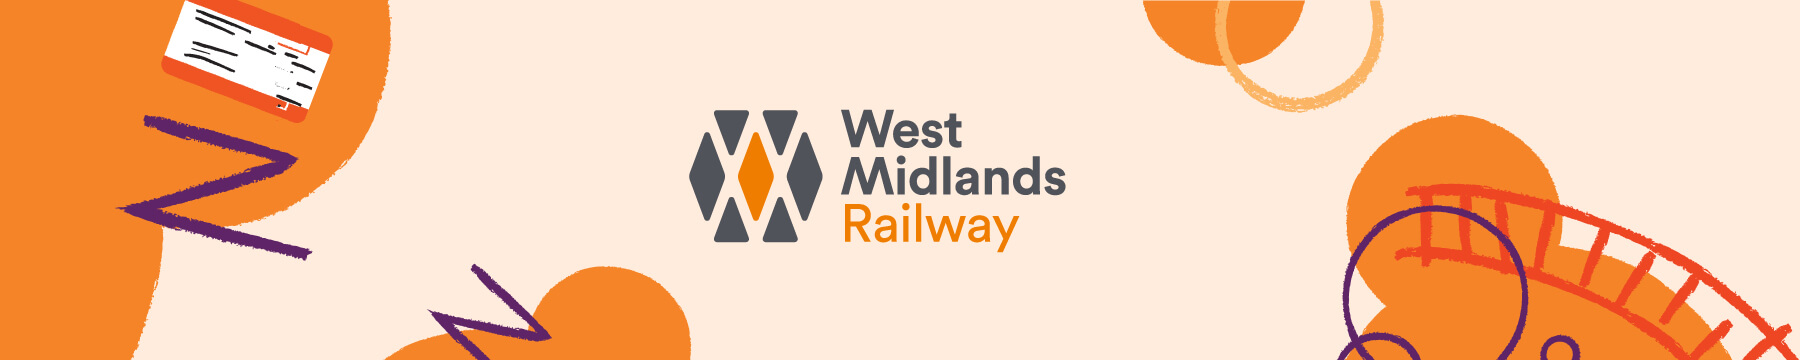 west midlands railway inner banner logo